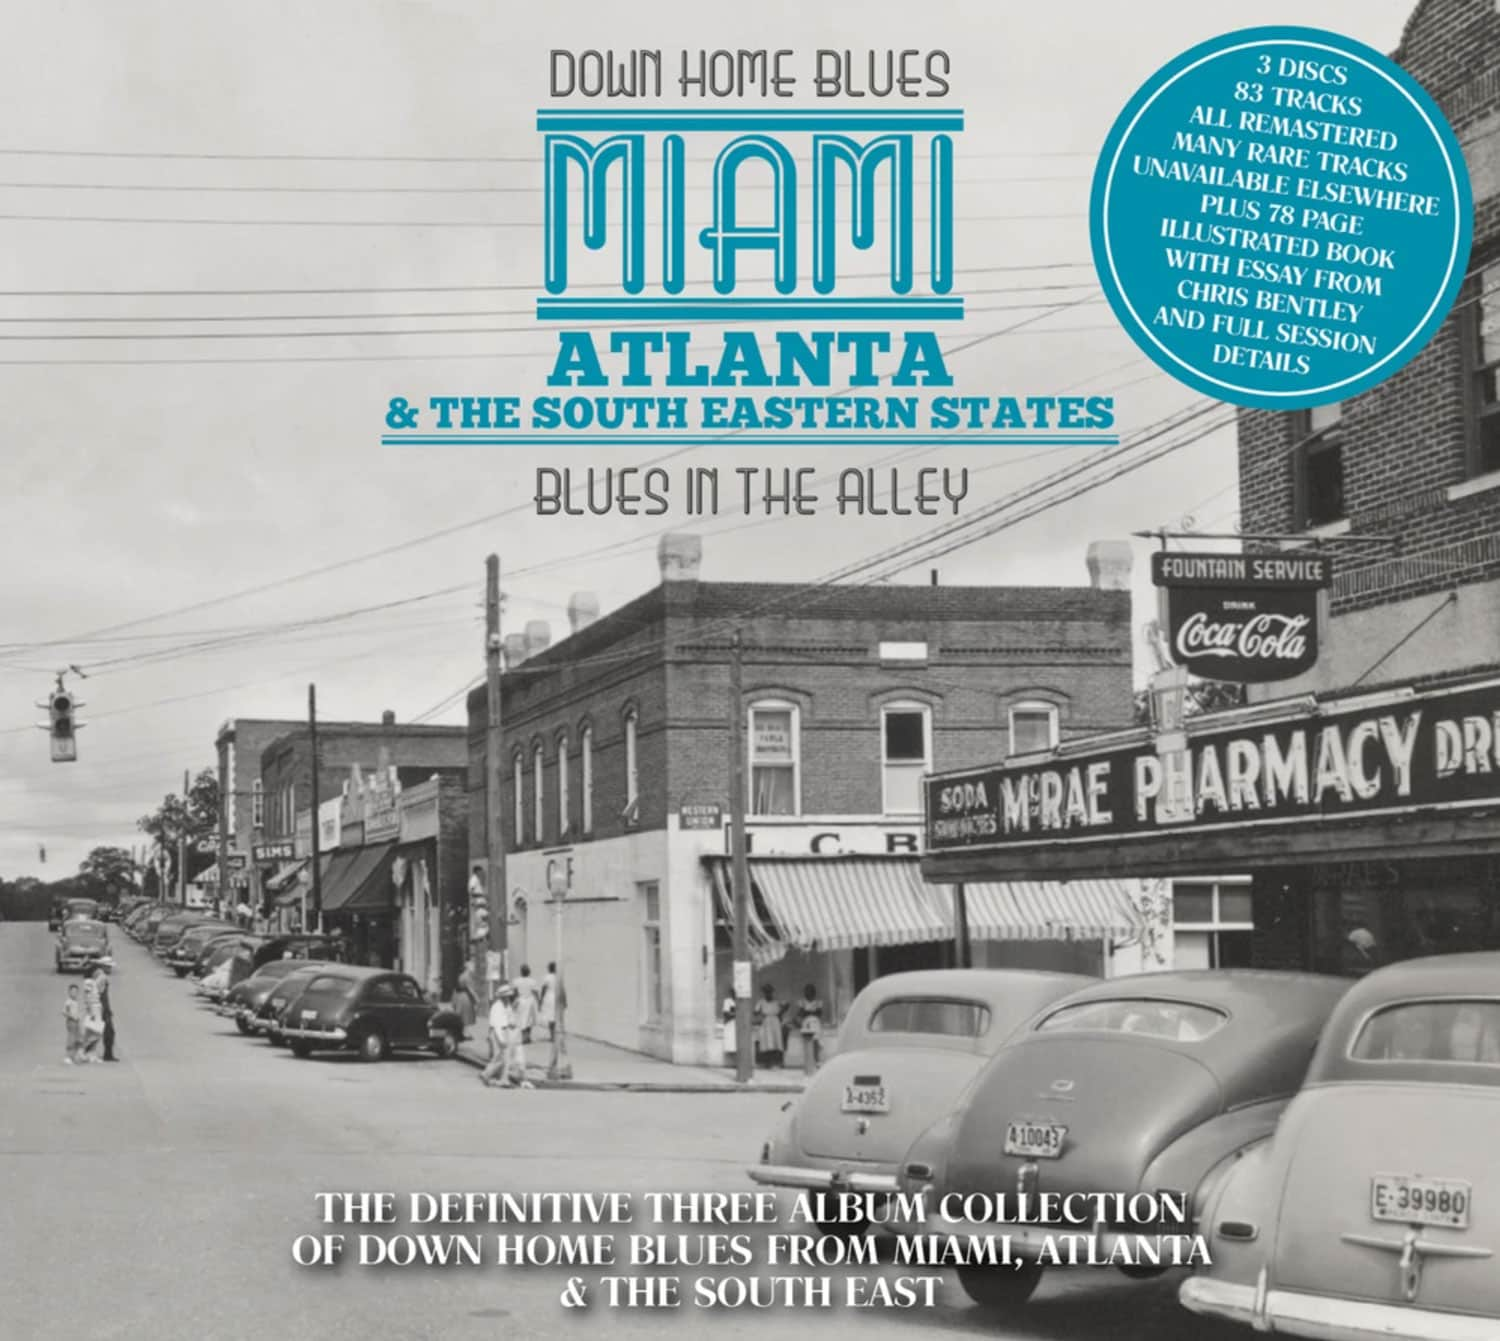 Down Home Blues: Miami, Atlanta & The South Eastern States: Blues In The Alley (CD)